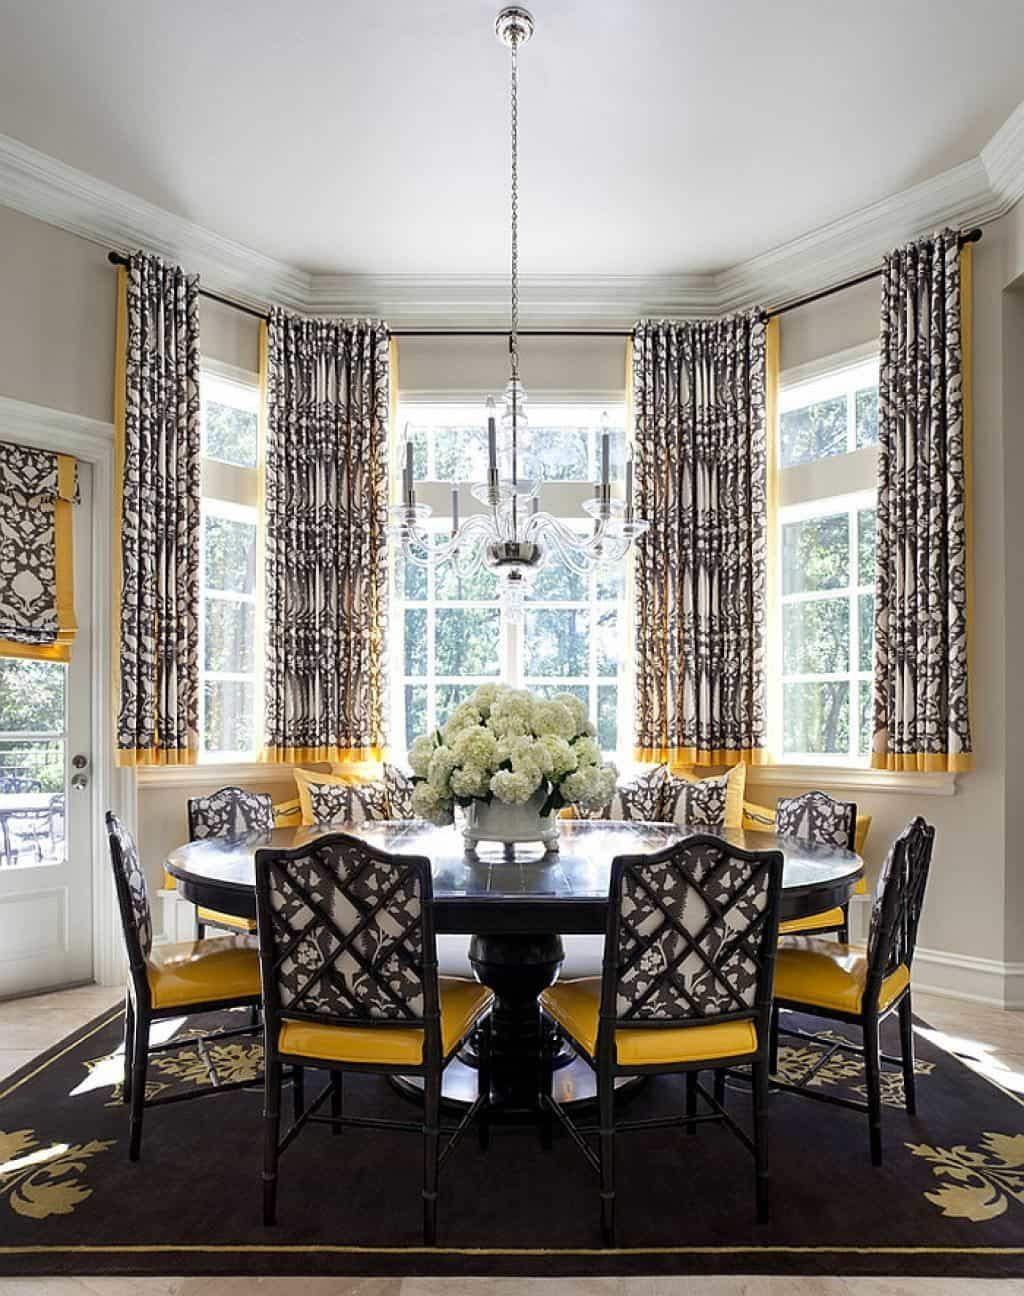 12+ Formal Dining Room Window Treatments Ideas   Dining room ...